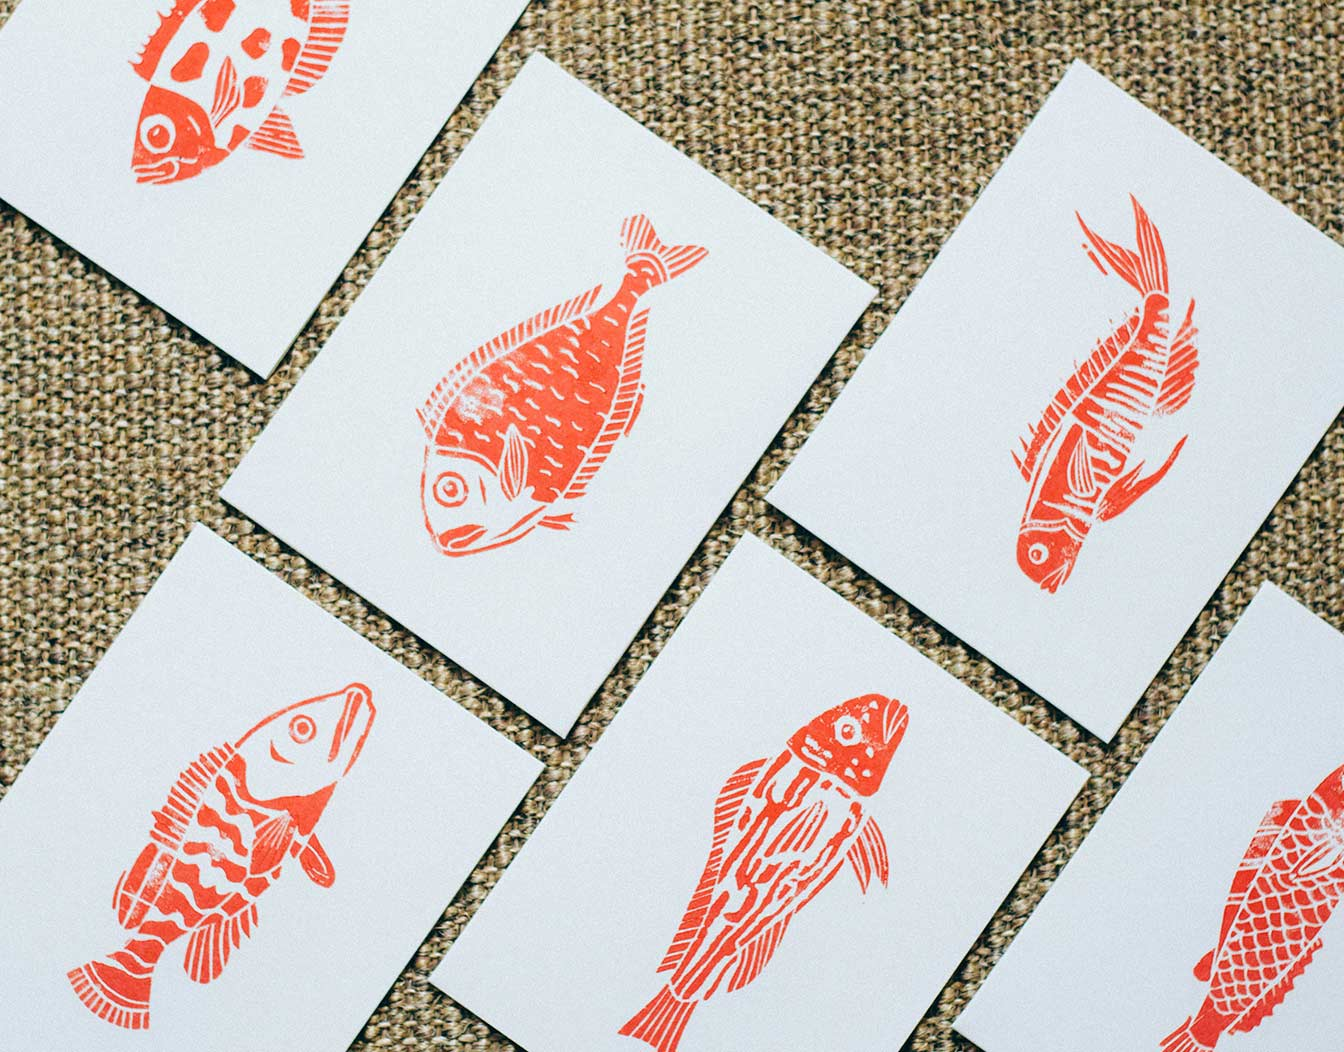 Event cards with fish vector